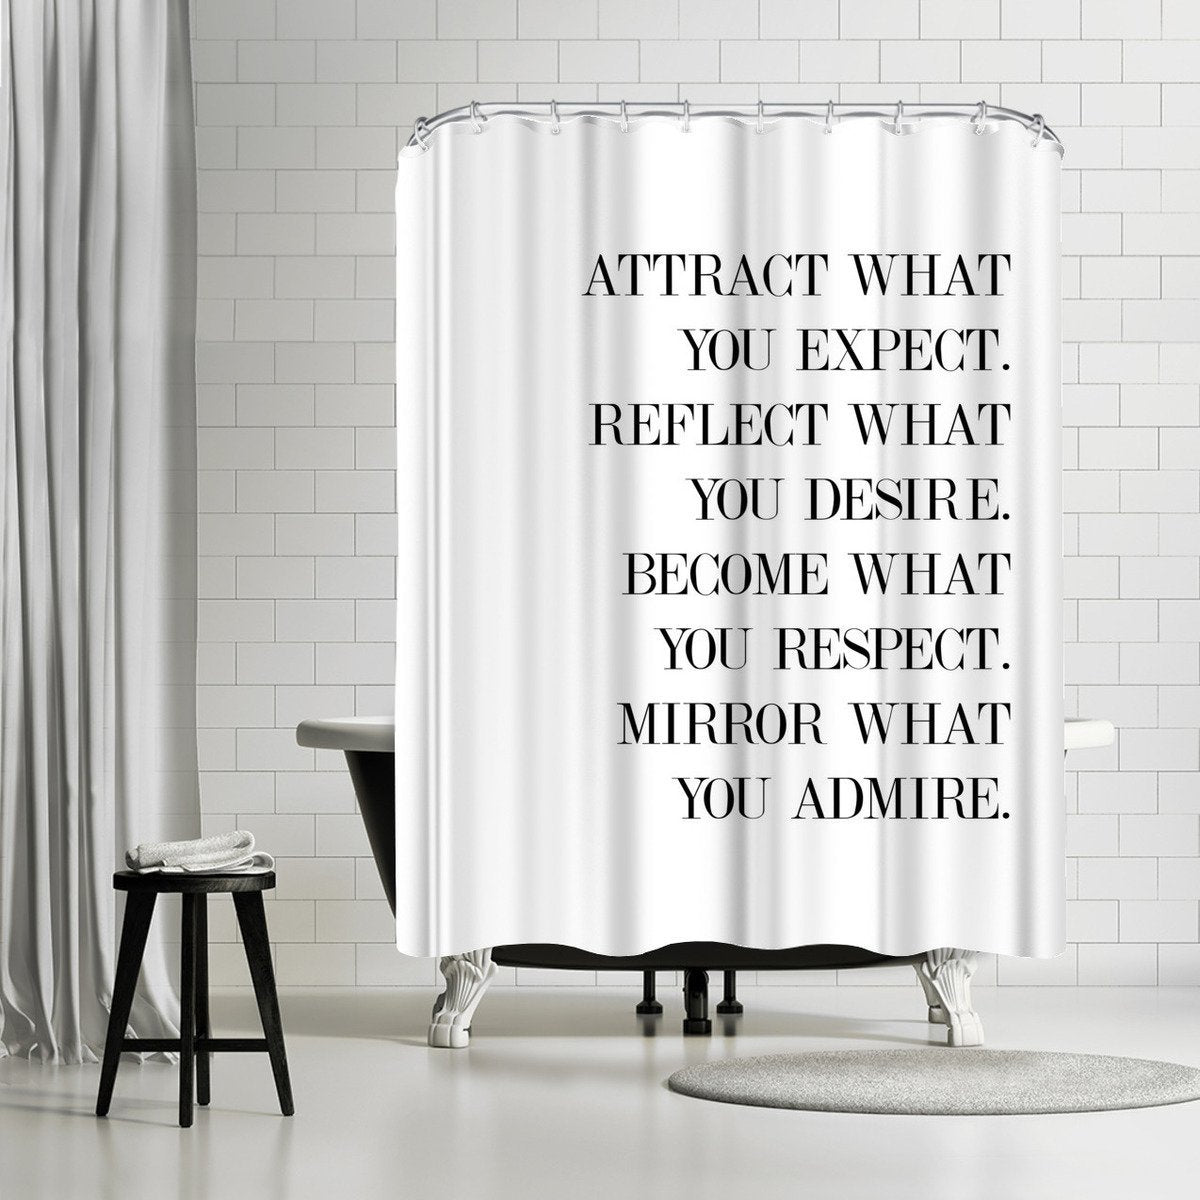 Believe by Explicit Design Shower Curtain - Shower Curtain - Americanflat